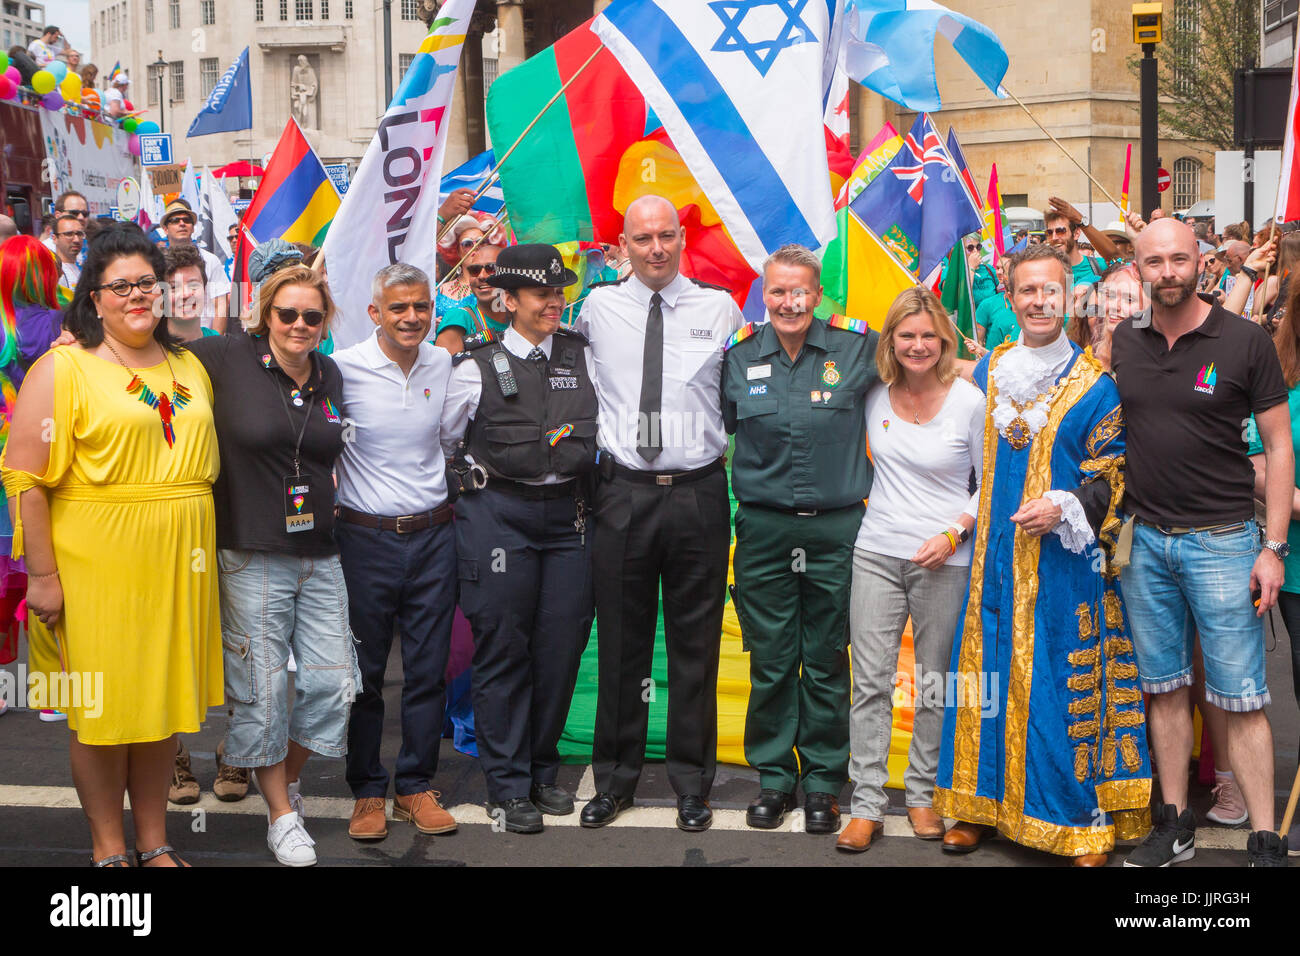 Mayor of London at Pride in London 2017 - opening of the parade - Stock Image